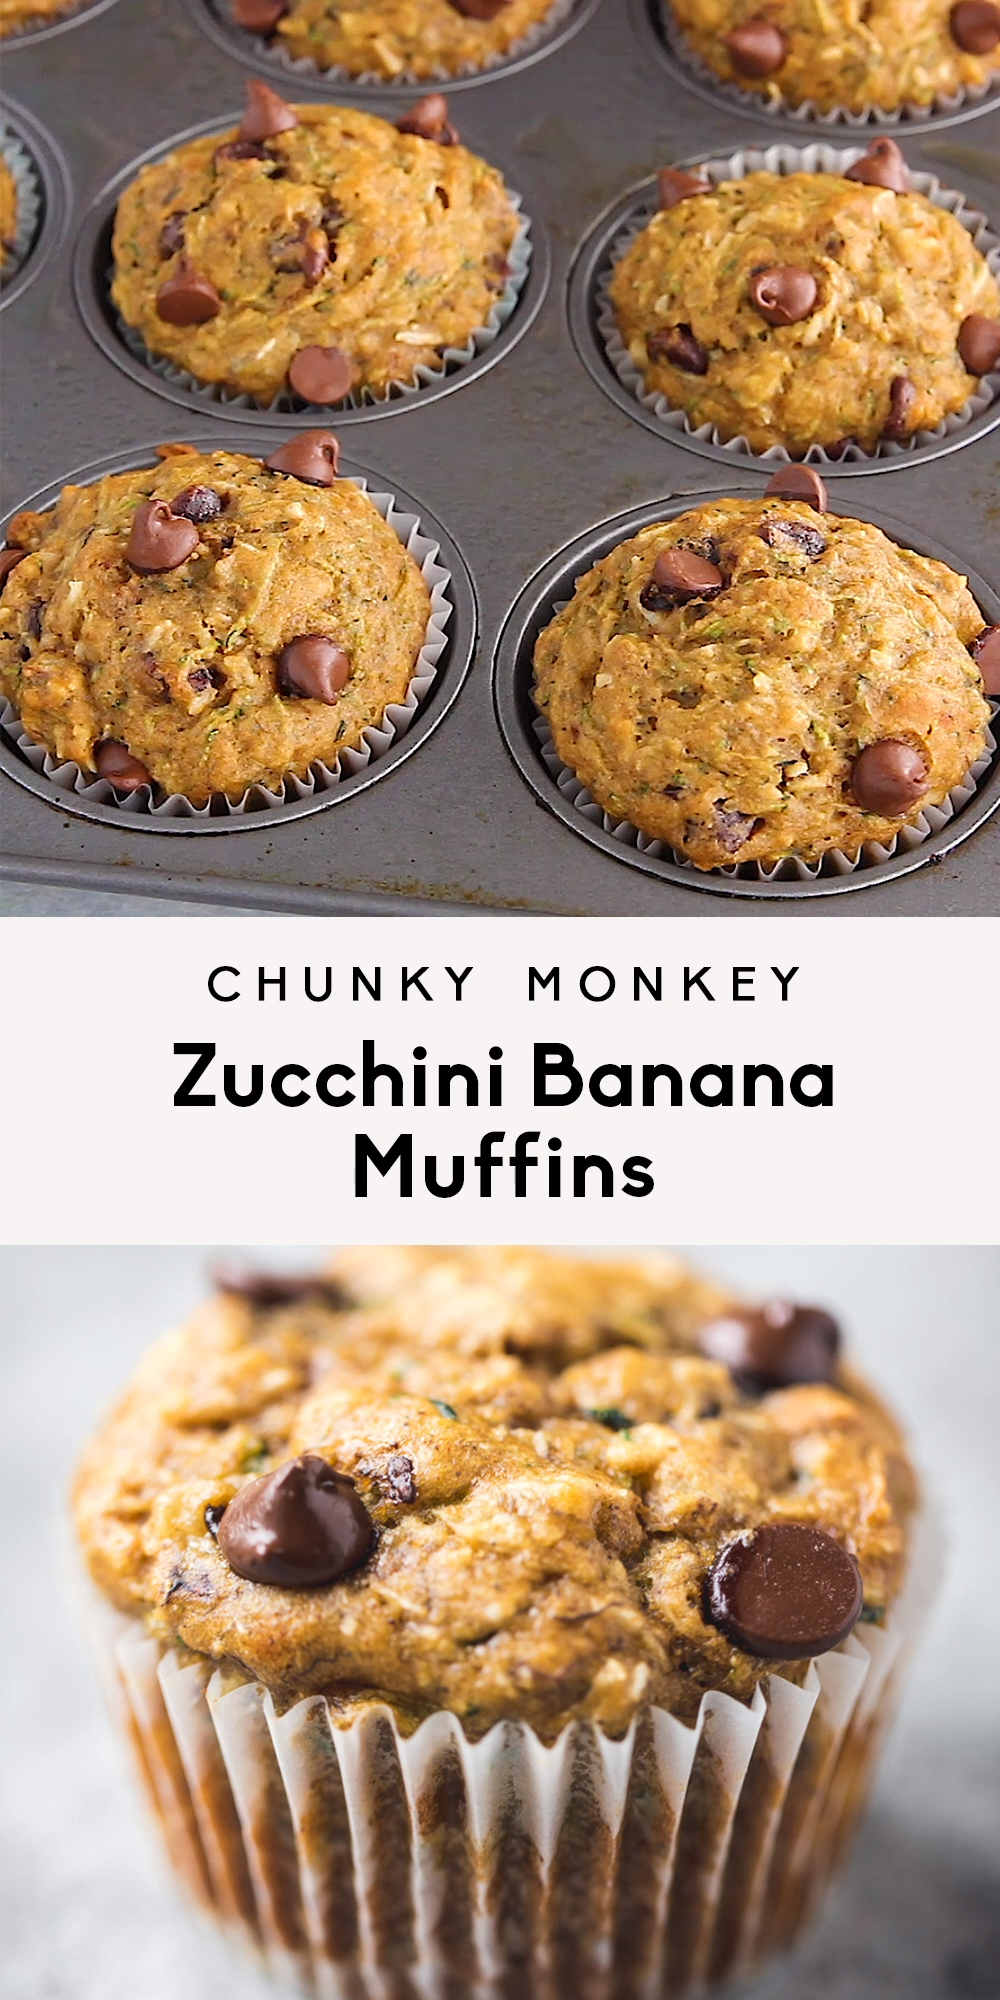 Photo of Chunky Monkey Zucchini Banana Muffins